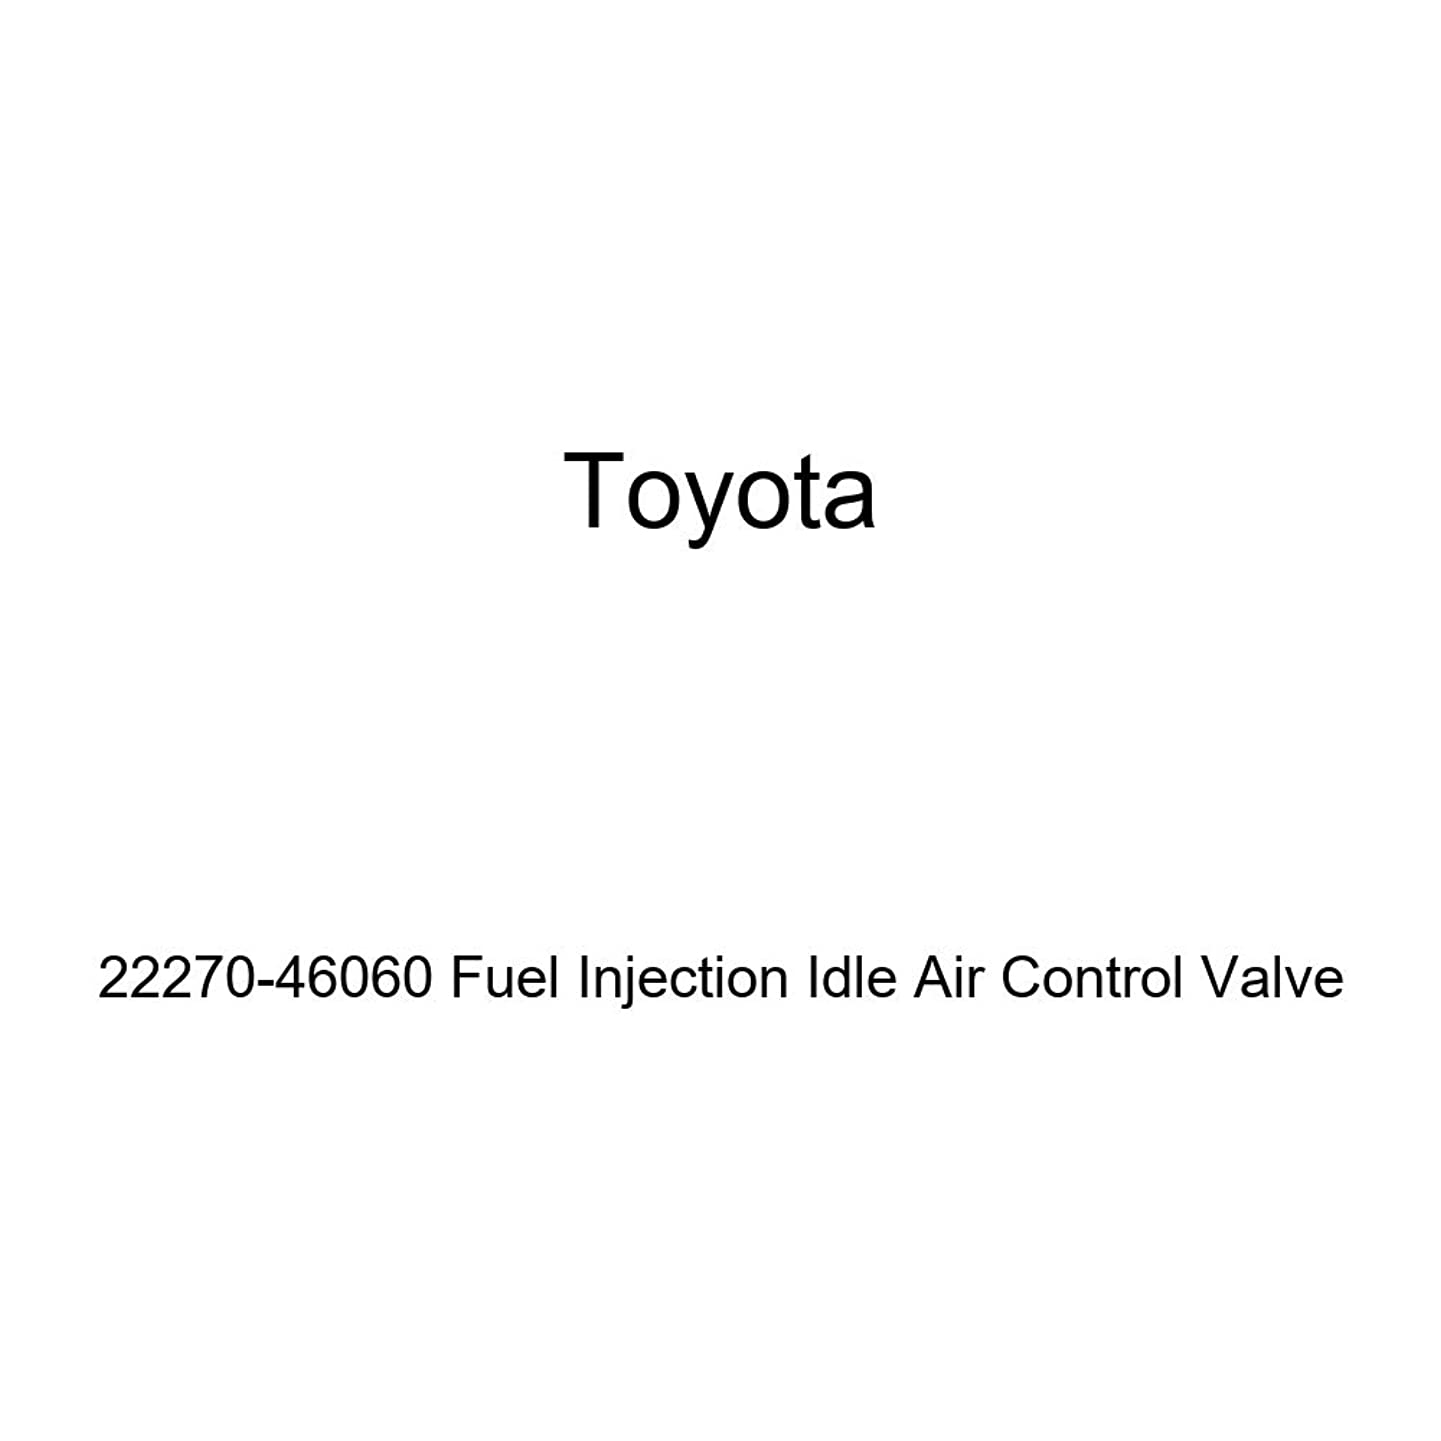 Toyota 22270-46060 Fuel Injection Idle Air Control Valve